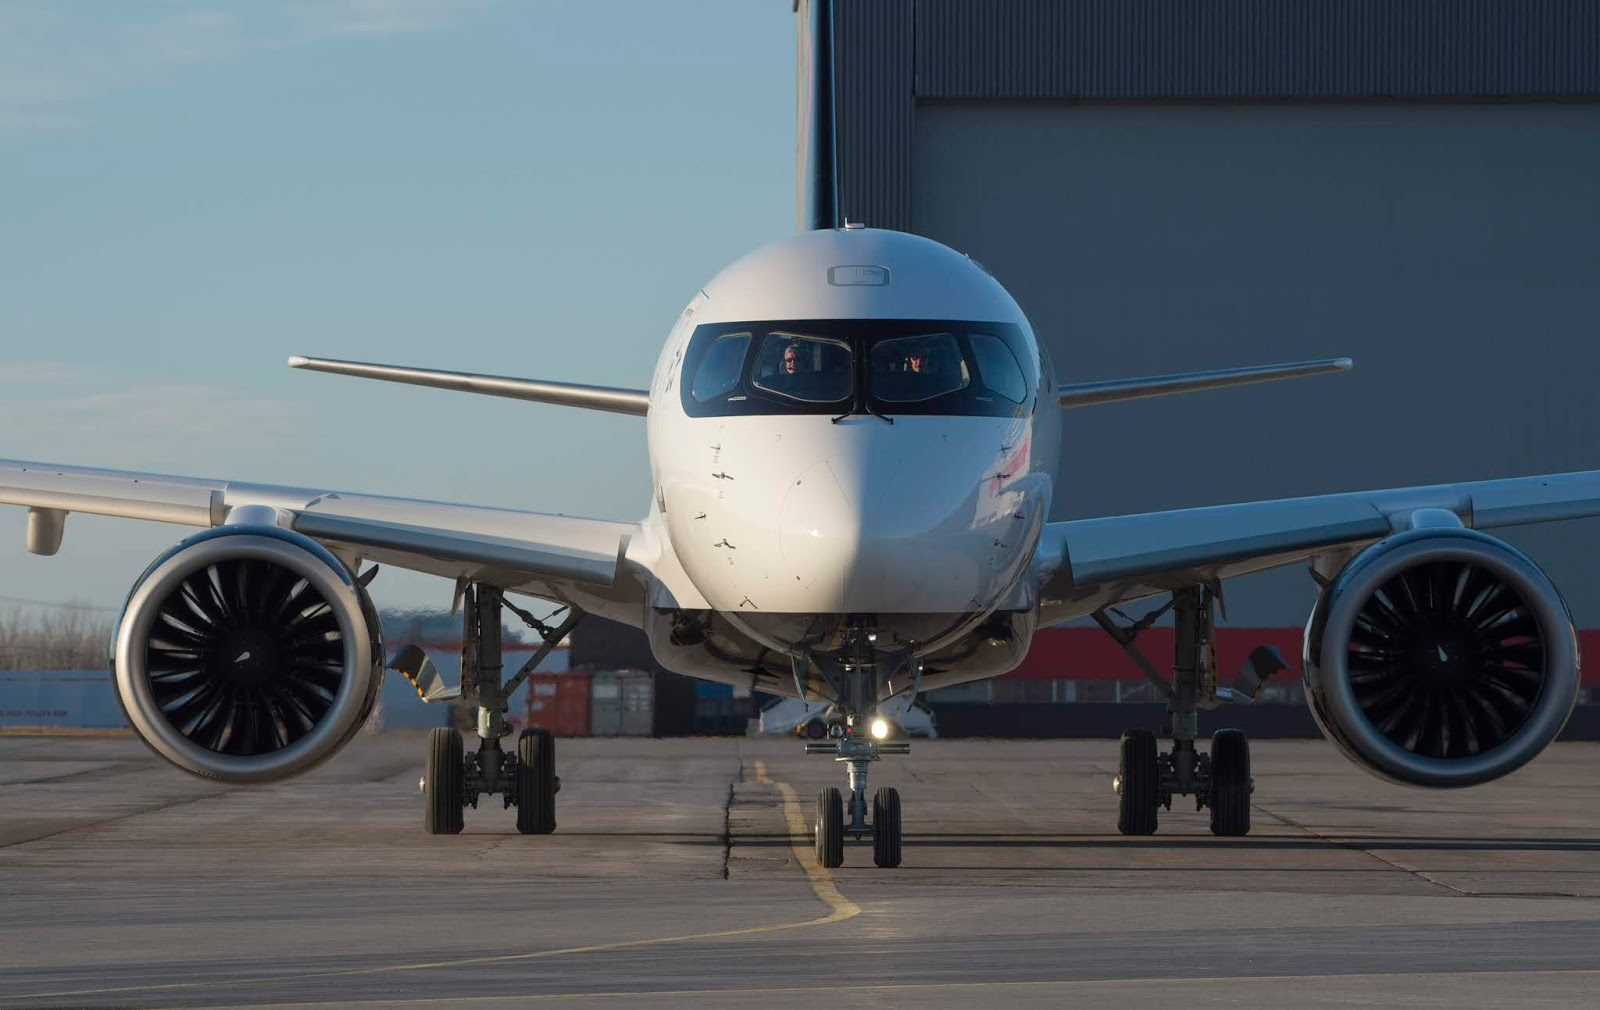 Air Canada unveils its Airbus A220 ahead of the first revenue flight this week